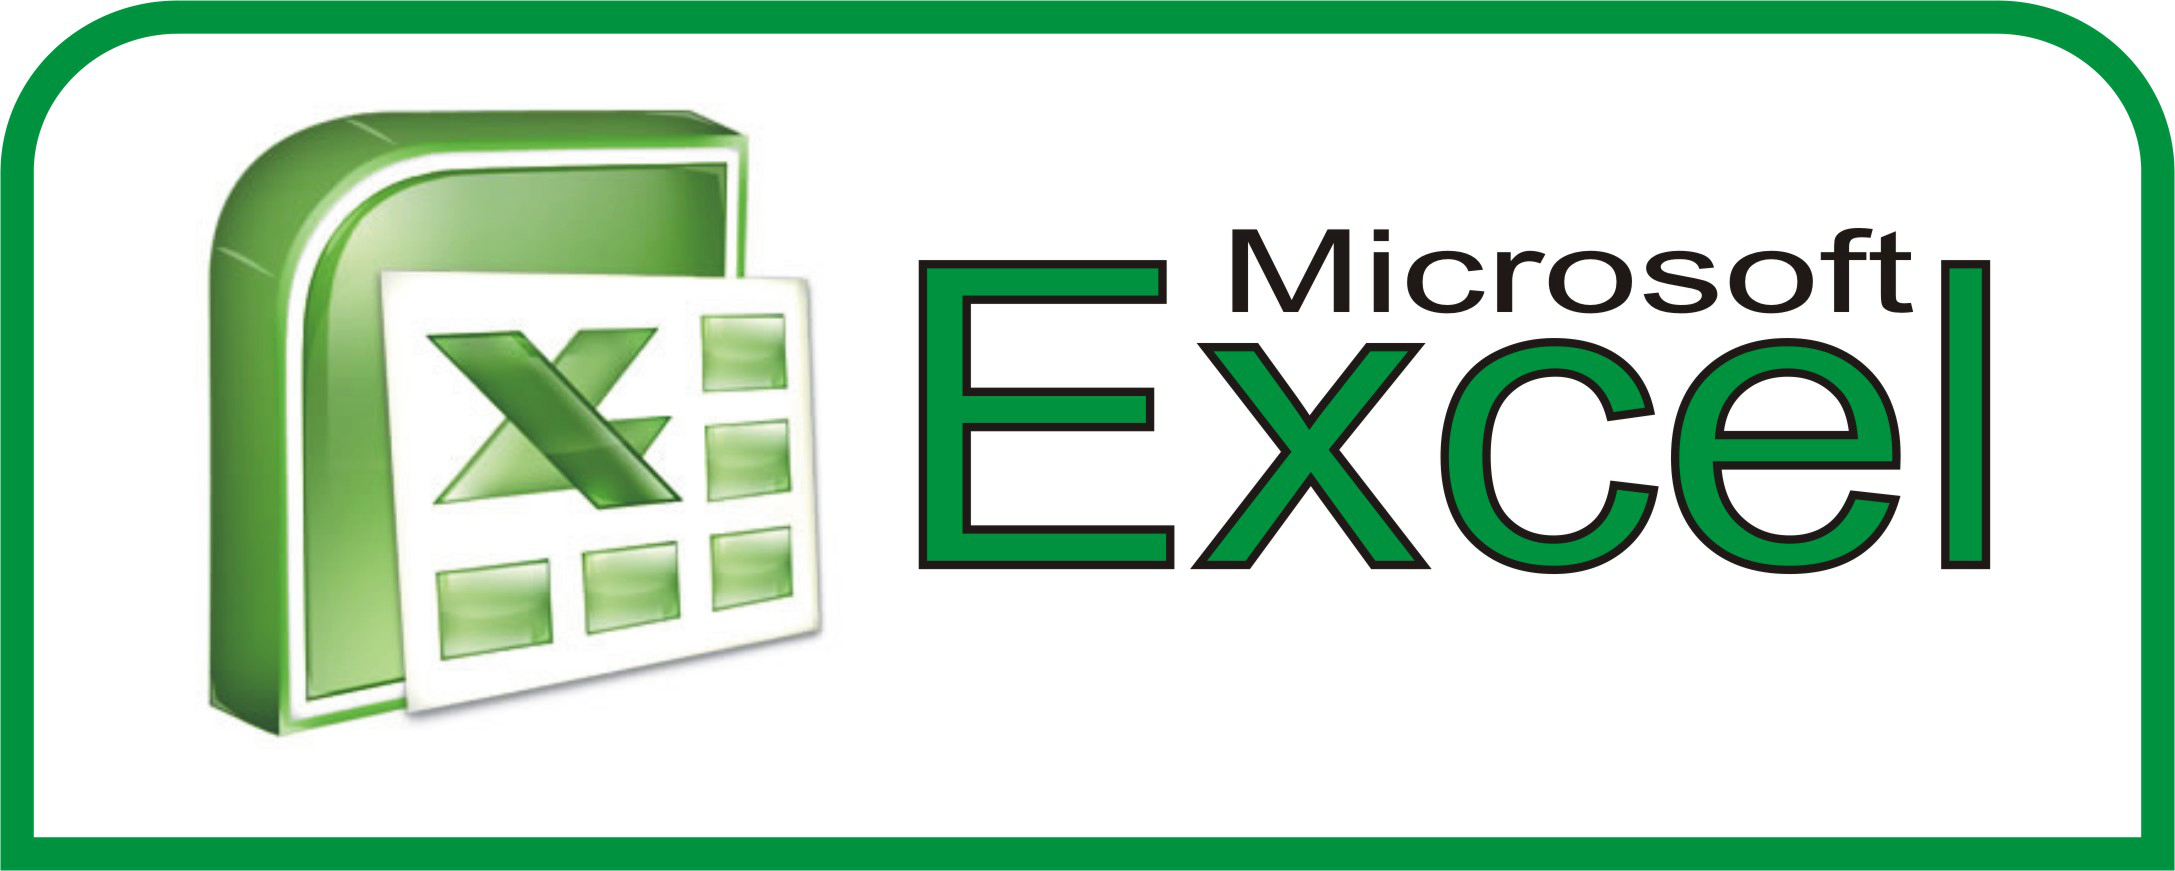 Ediblewildsus  Winsome  Excel Shortcuts You Probably Didnt Know About  Techdissected With Goodlooking Nesting In Excel Besides Excel Workbook Protection Furthermore How To Add Symbols In Excel With Astounding Monthly Timesheet Excel Also Excel Arguments In Addition Excel Column Graph And Excel Formula Time As Well As Checkboxes In Excel  Additionally Excel Household Budget Template From Techdissectedcom With Ediblewildsus  Goodlooking  Excel Shortcuts You Probably Didnt Know About  Techdissected With Astounding Nesting In Excel Besides Excel Workbook Protection Furthermore How To Add Symbols In Excel And Winsome Monthly Timesheet Excel Also Excel Arguments In Addition Excel Column Graph From Techdissectedcom